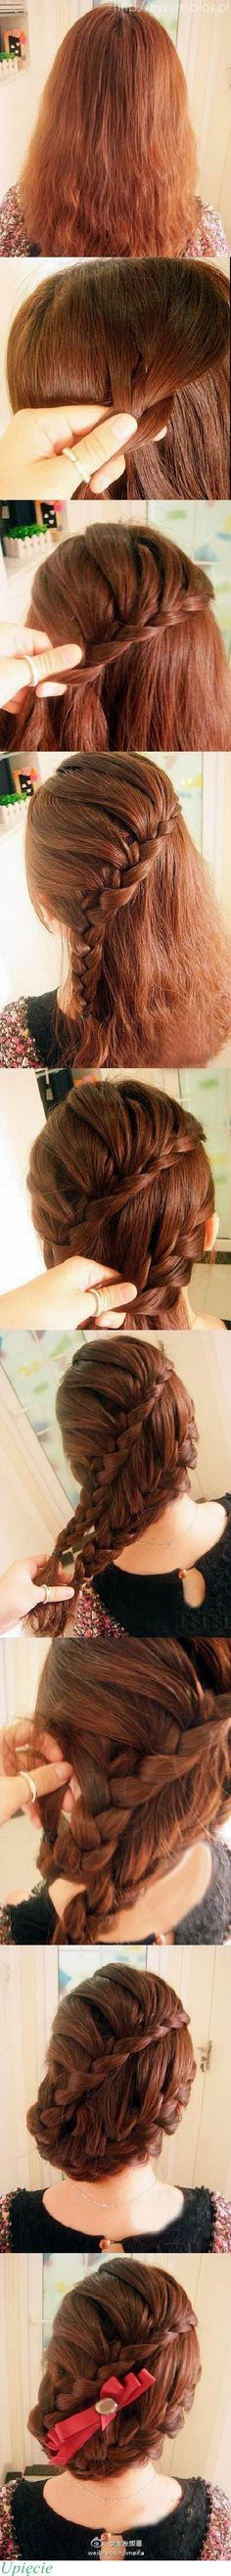 step by step braided updo    - I love this!! <3 gonna do this tmrw :>